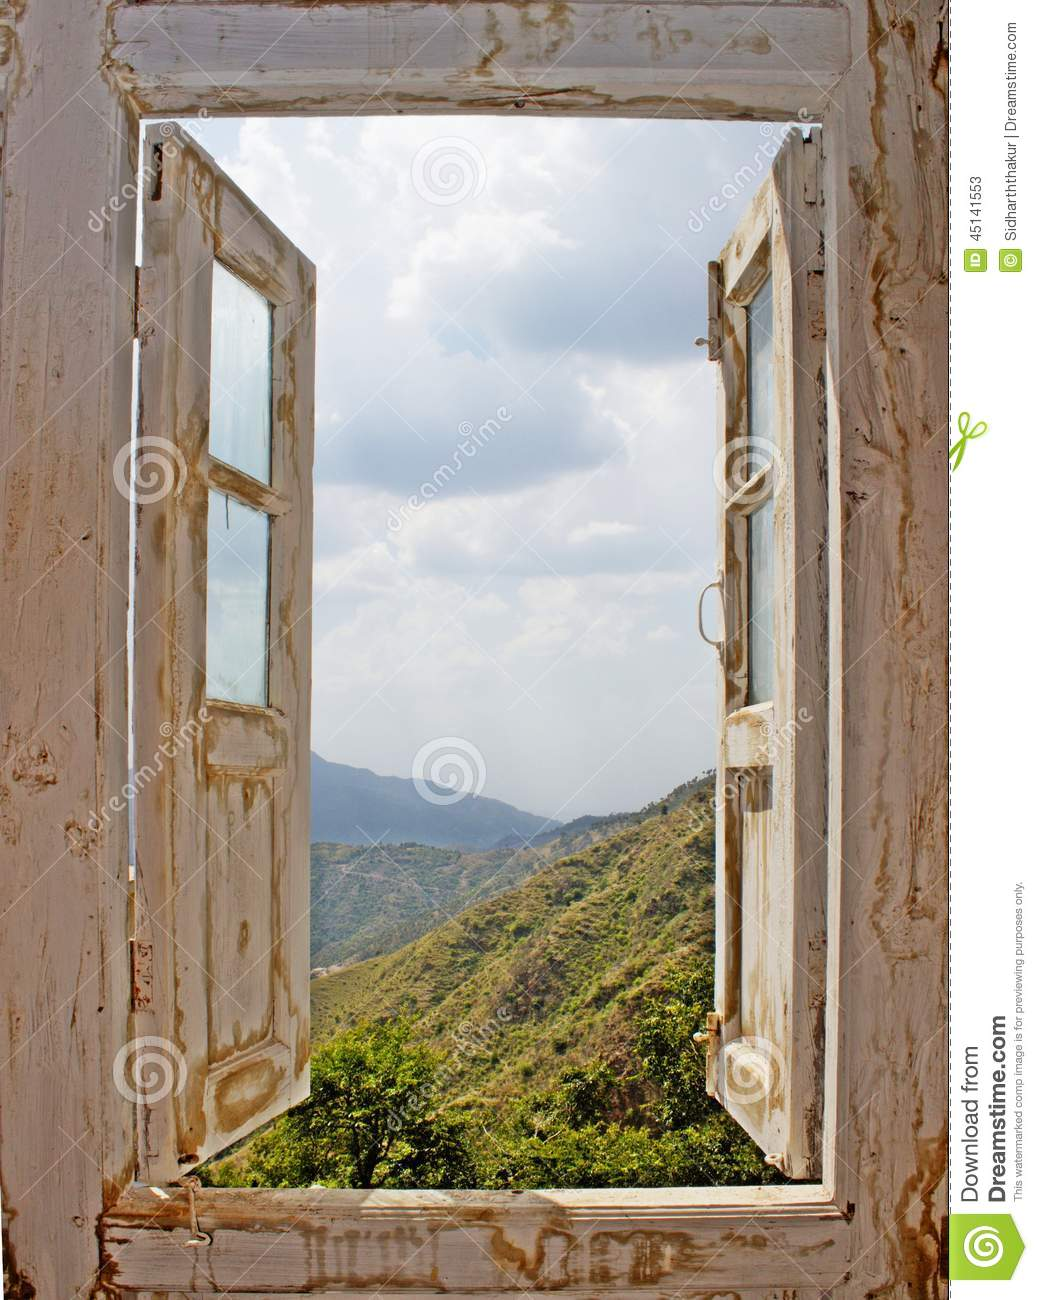 Vue d 39 une vieille fen tre blanche photo stock image for Fenetre blanche